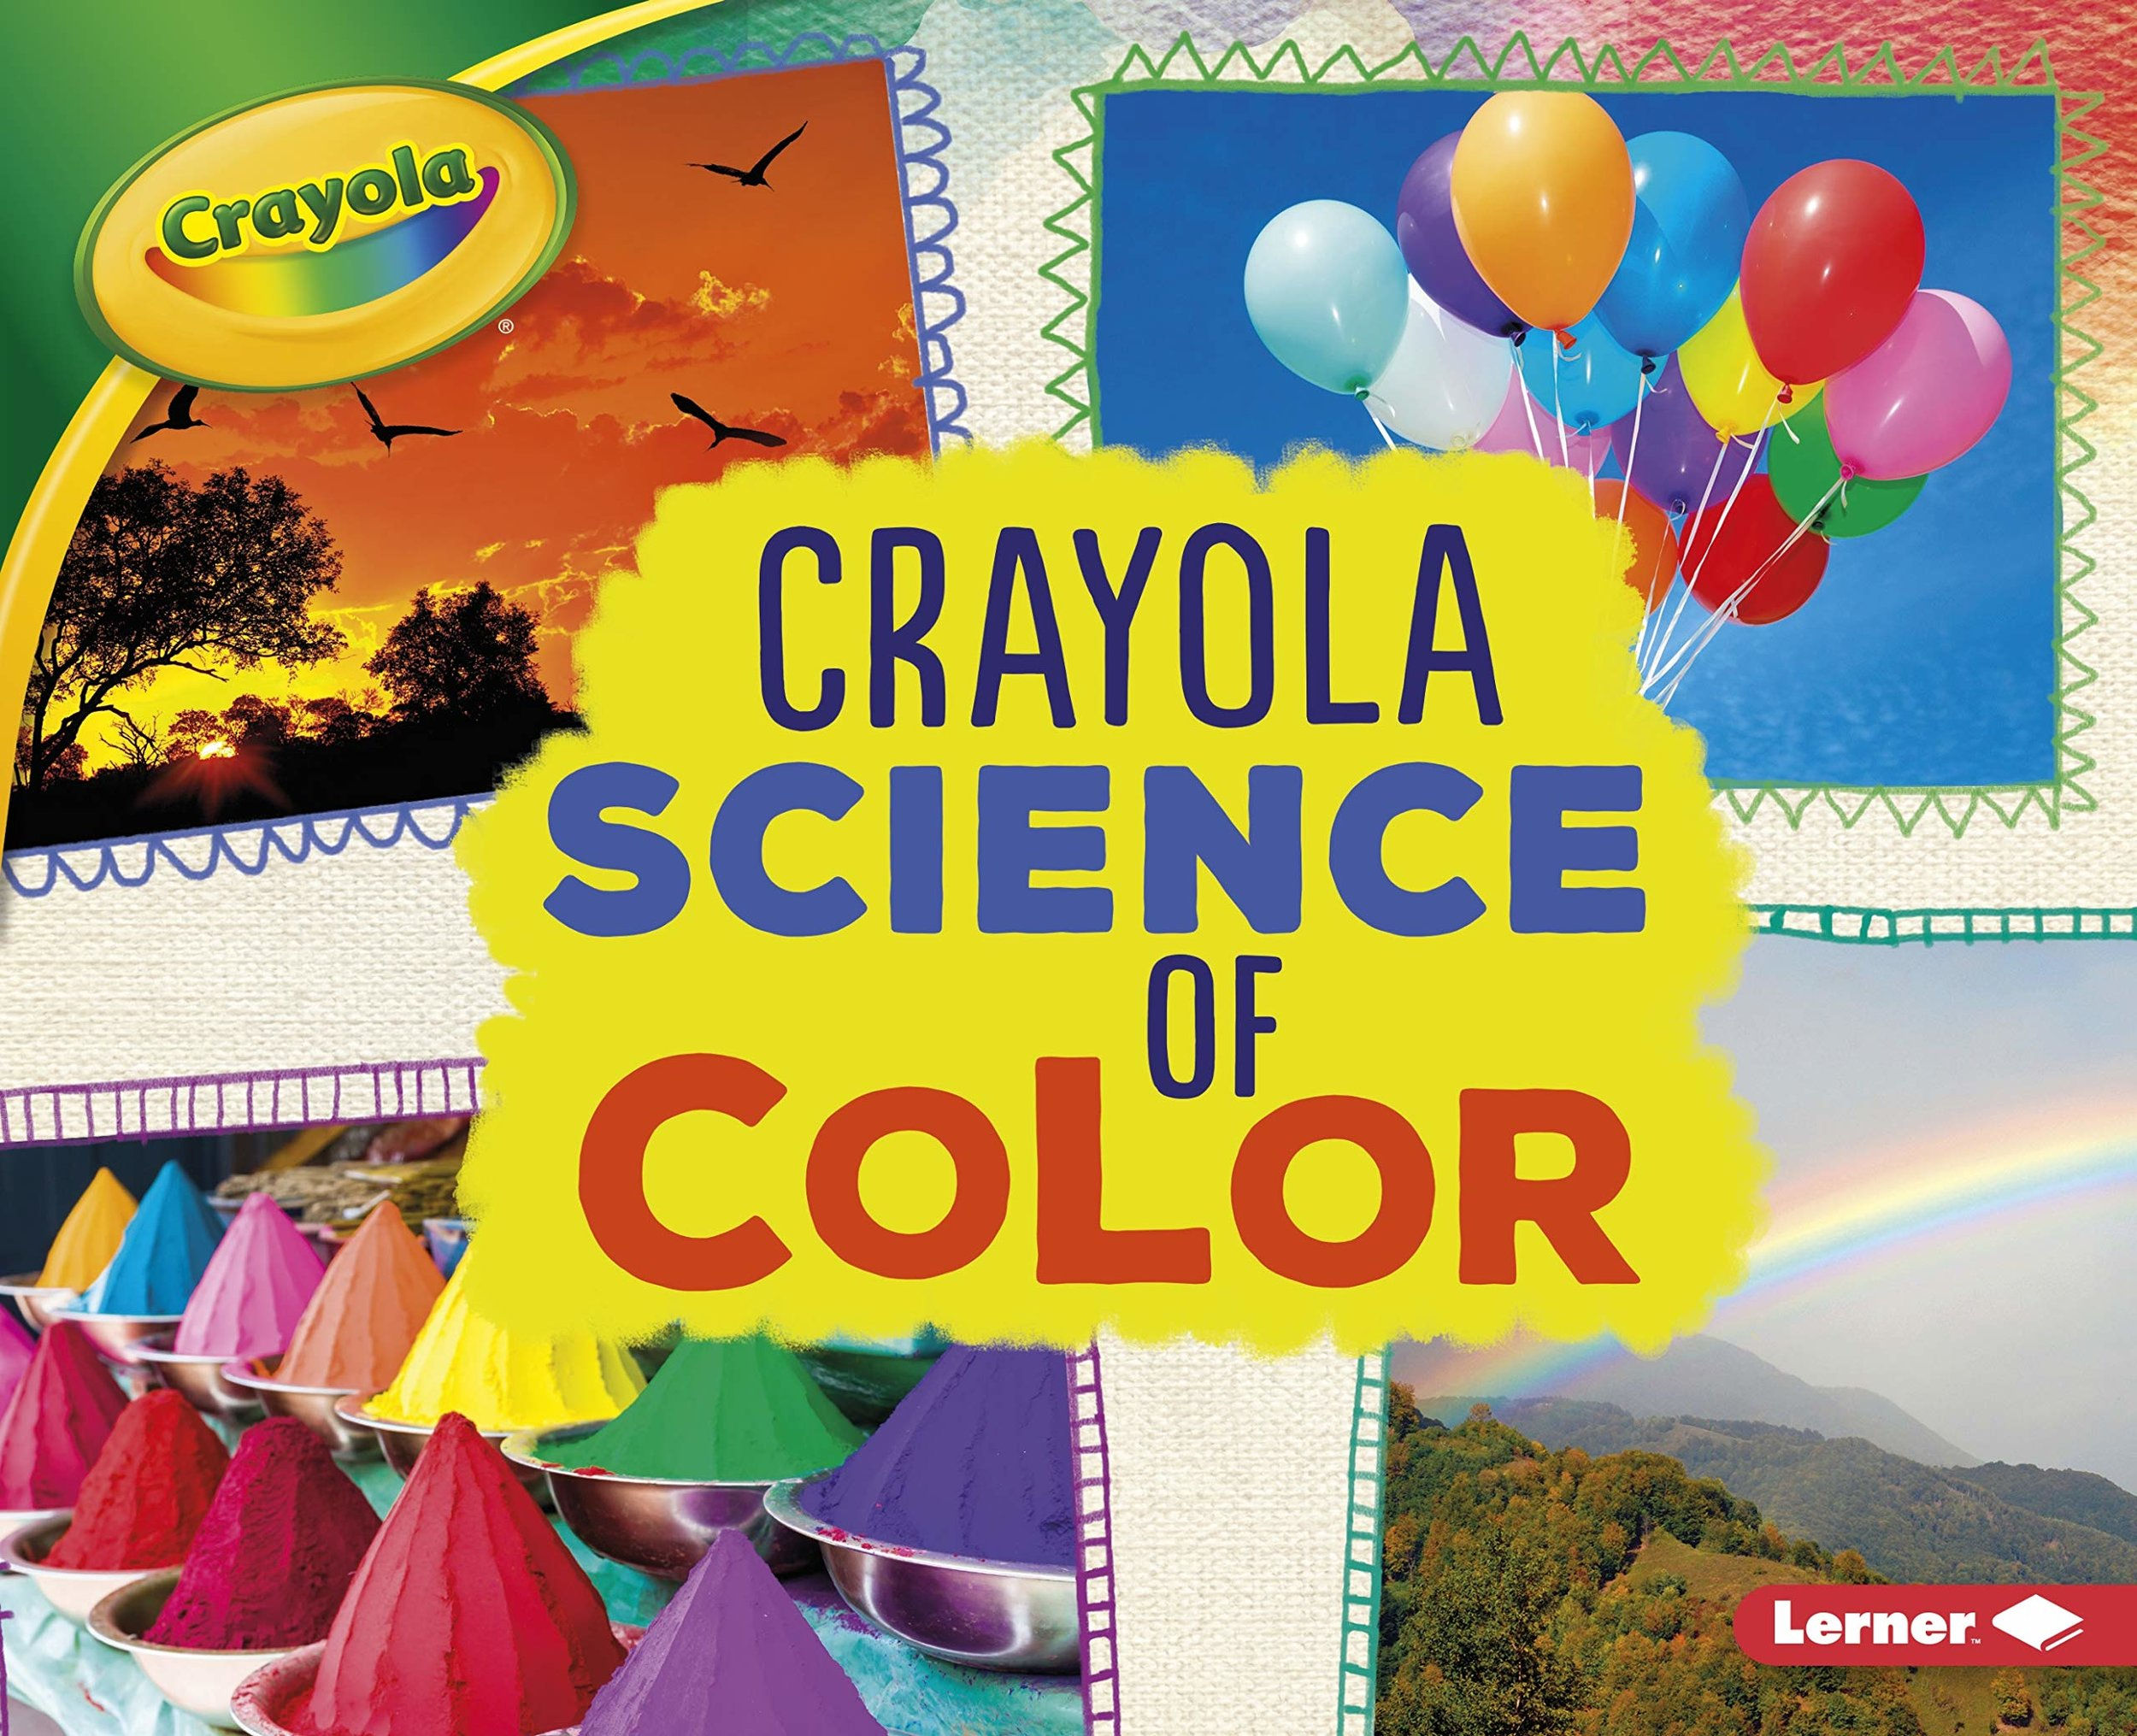 Crayola Science of Color.jpg